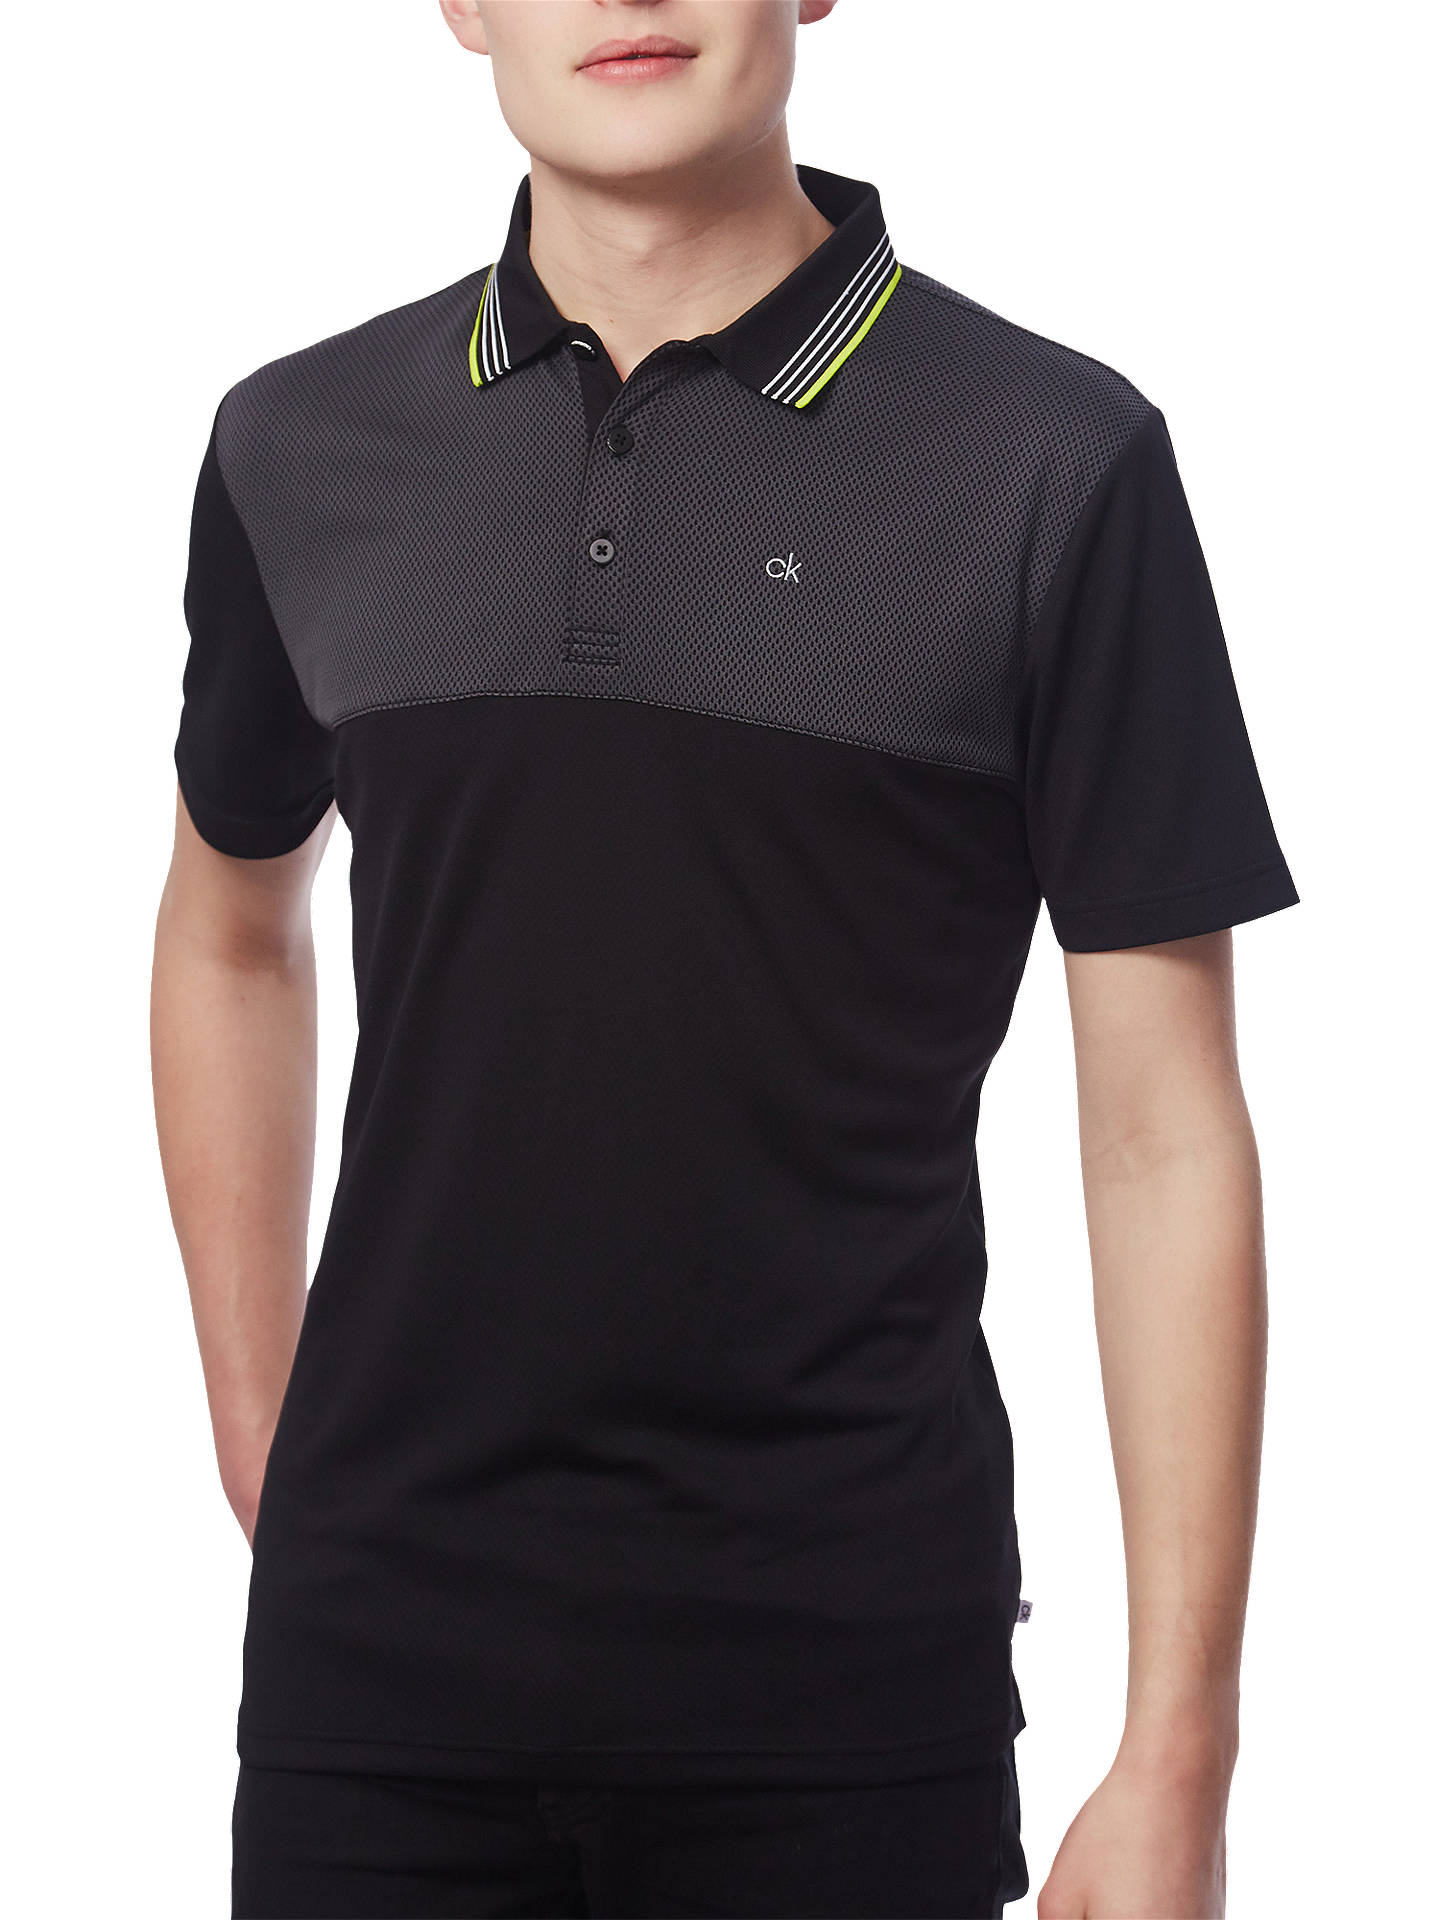 ed9cabd1 Buy Calvin Klein Golf 39th Street Polo Shirt, Black/Lime, S Online at ...